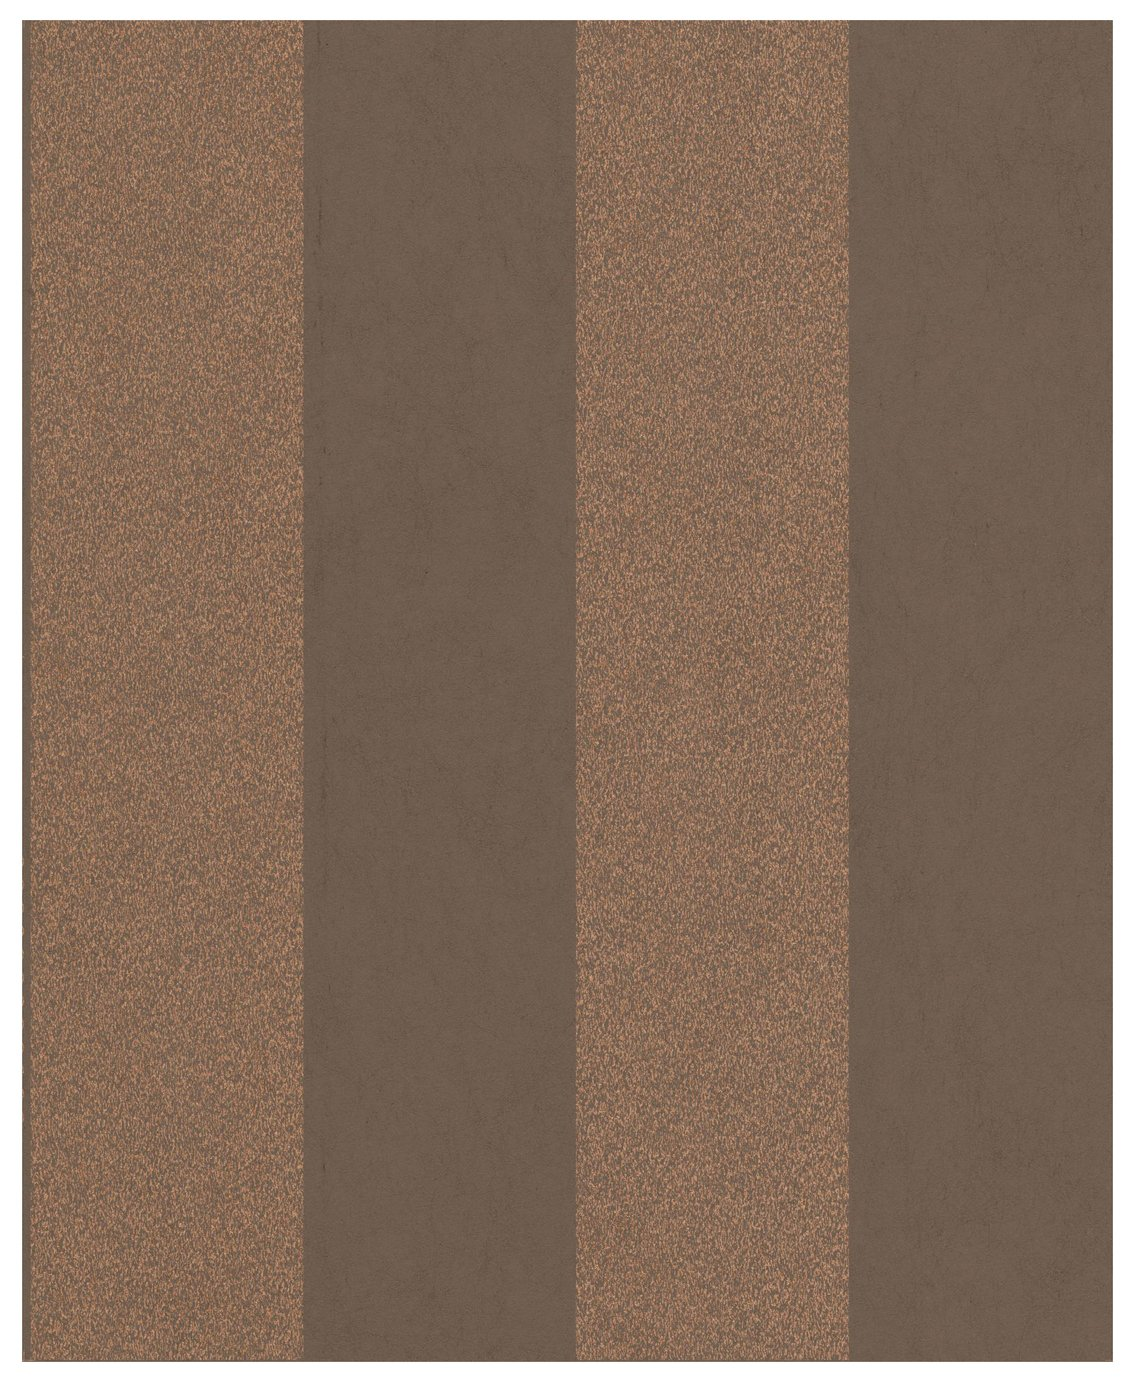 Image of Graham & Brown Artisan Stripe Wallpaper Copper